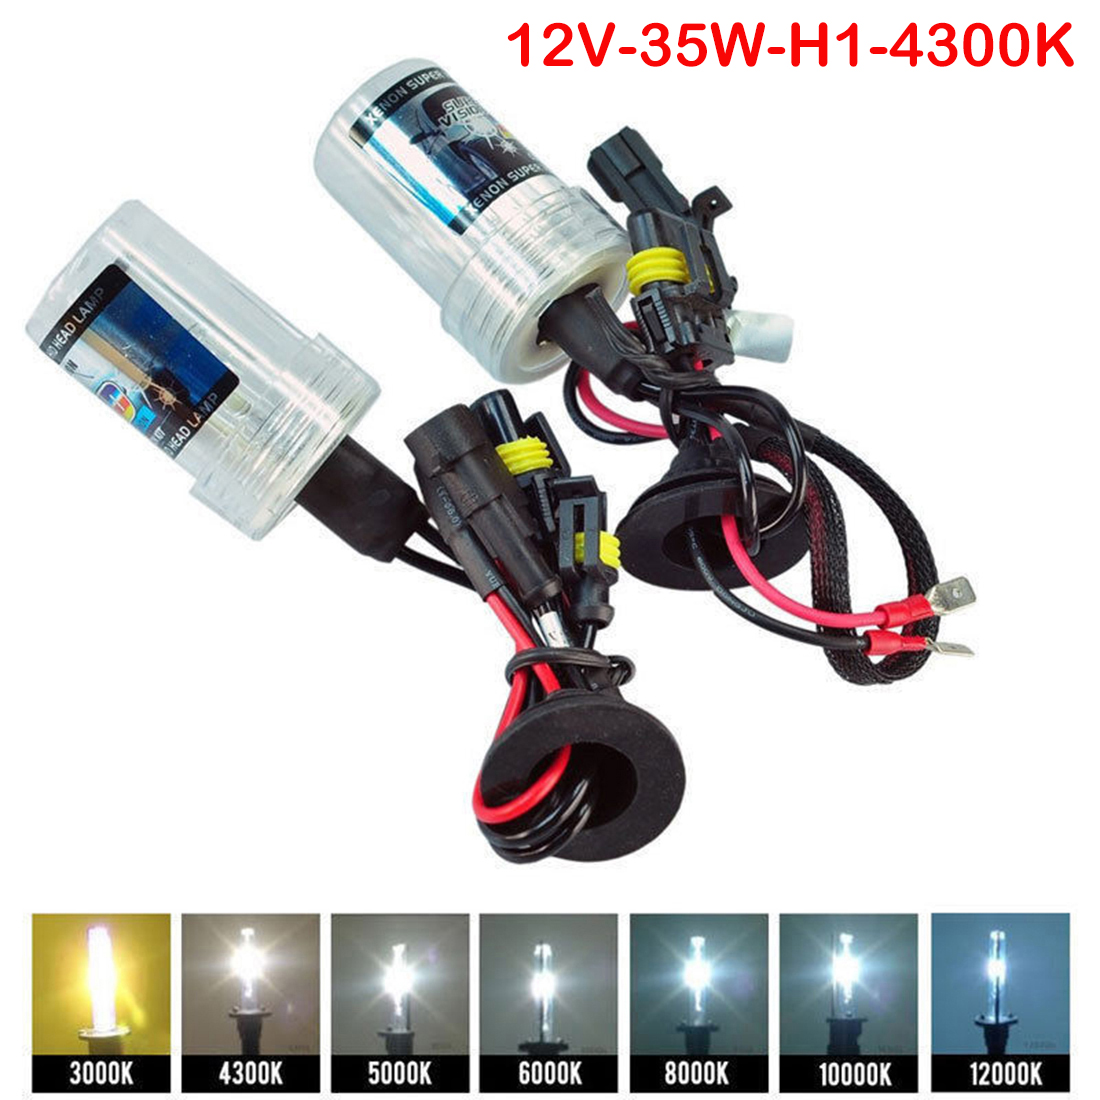 Tonewan 2pcs 35W Xenon HID Bulb Headlight Lamp Auto Car head light H1 H4 H11 4300K 5000K 6000K 8000K Car Auto Replacement pyogenesis de